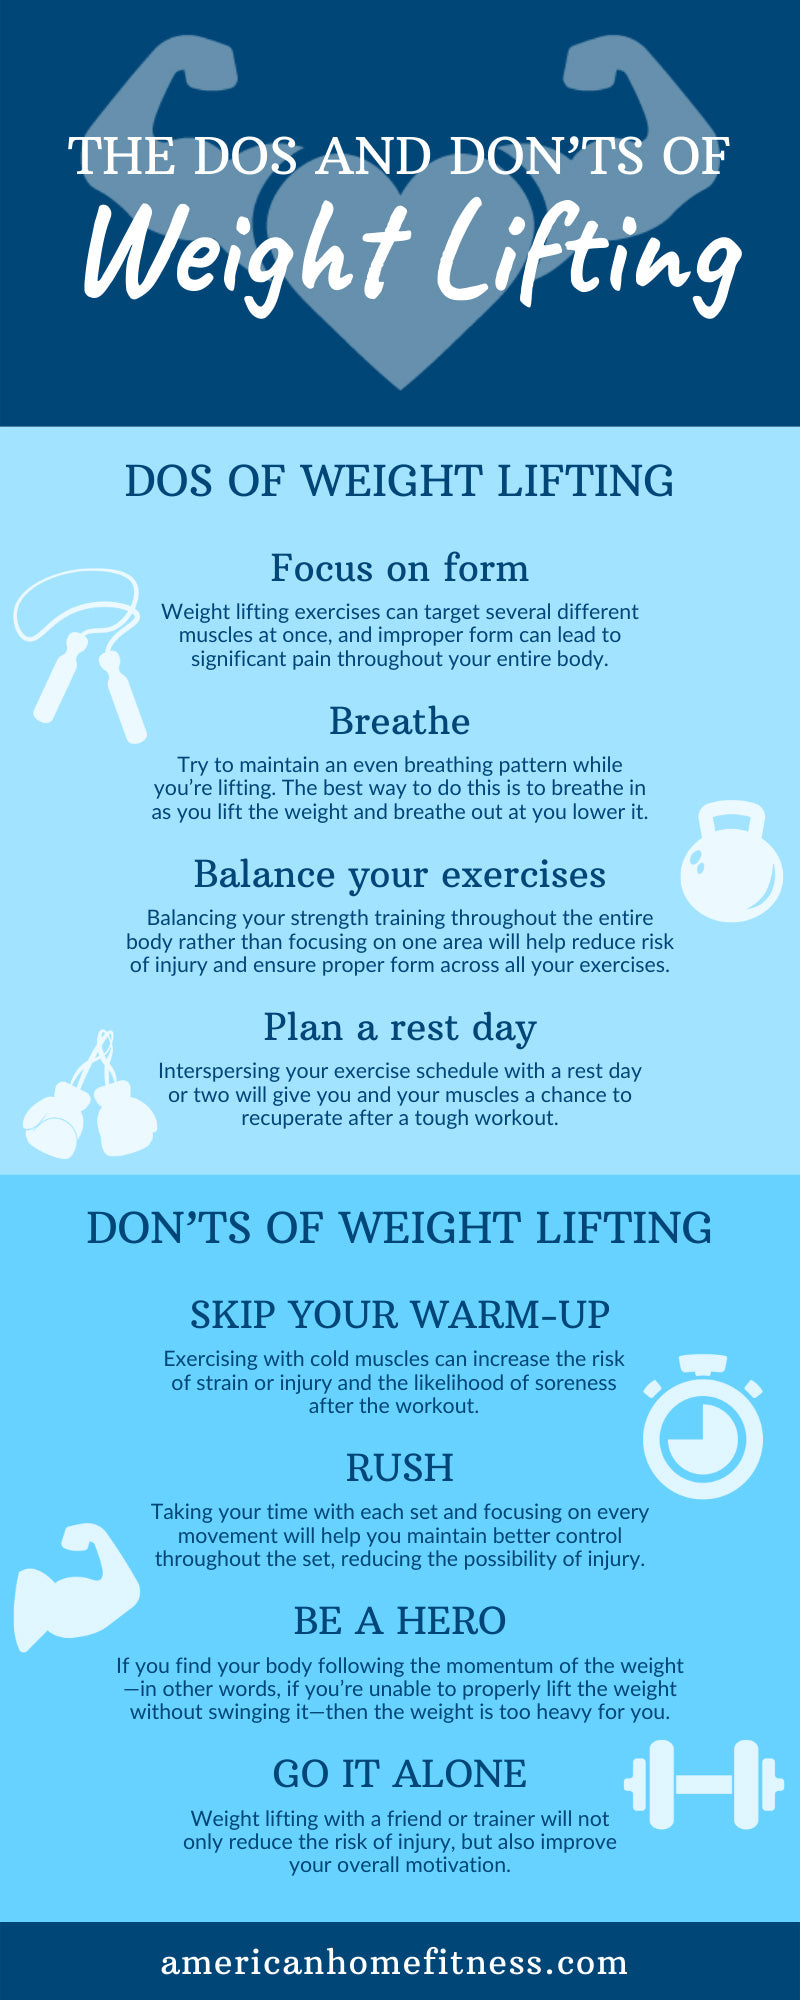 The Dos and Don'ts of Weight Lifting infographic